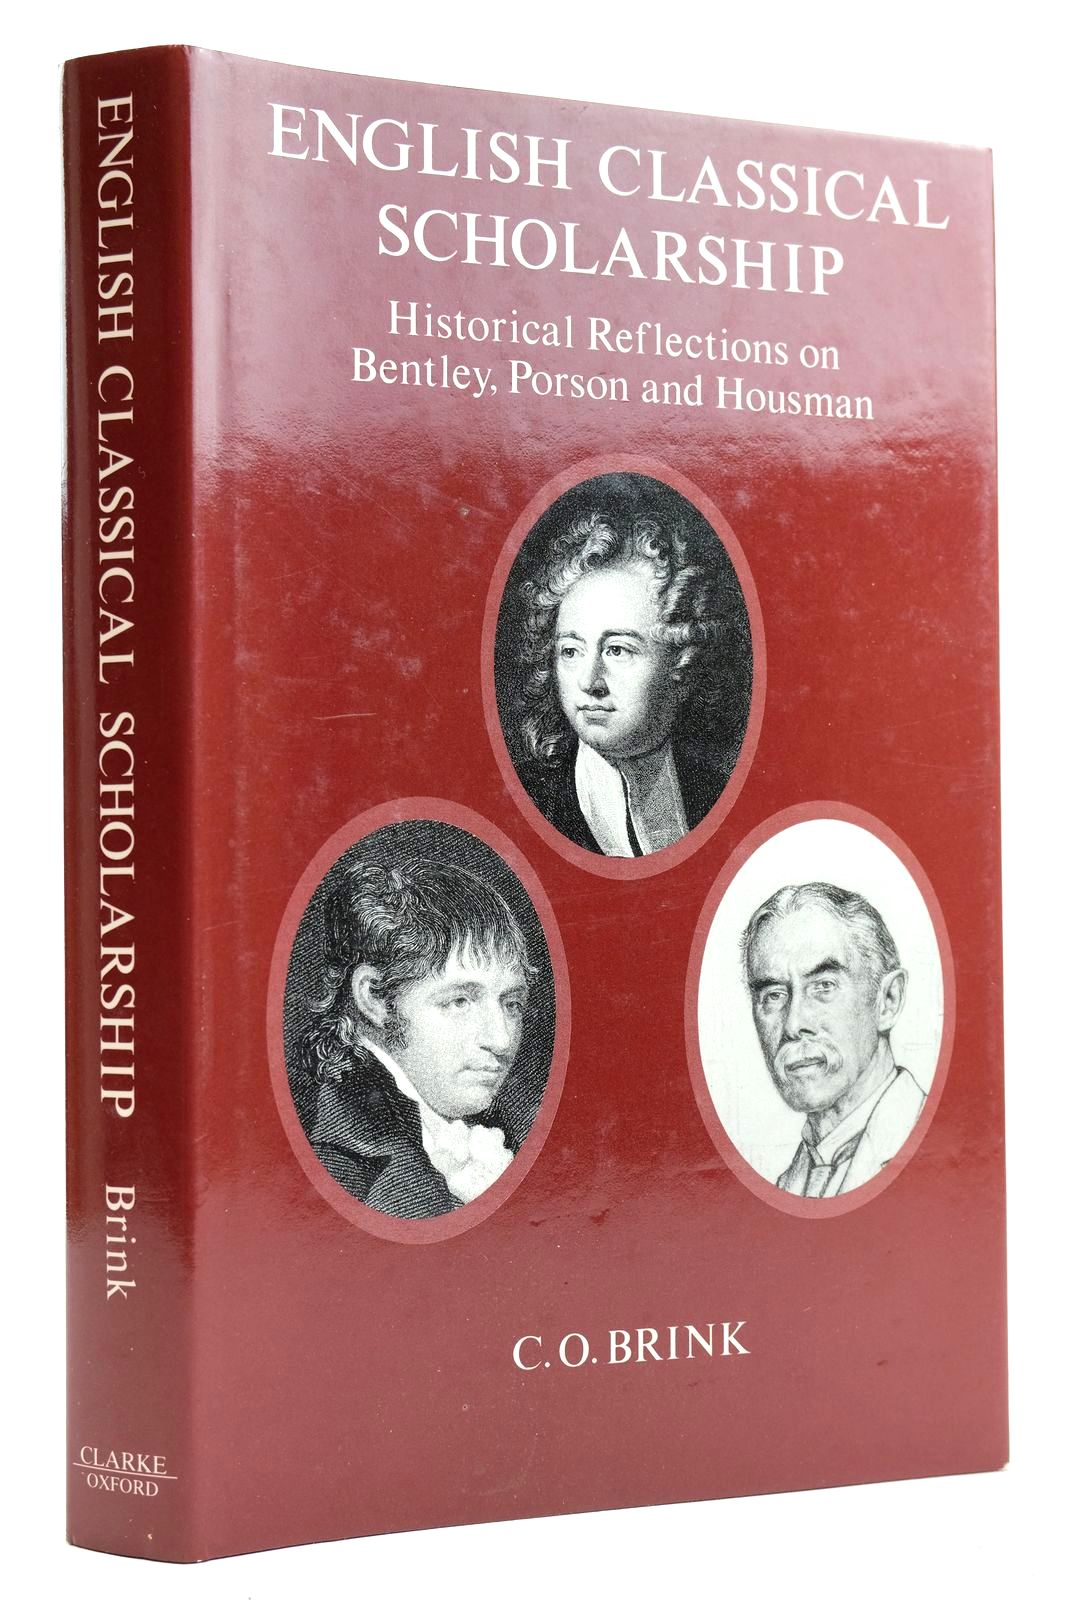 Photo of ENGLISH CLASSICAL SCHOLARSHIP HISTORICAL REFLECTIONS ON BENTLEY, PORSON, AND HOUSMAN- Stock Number: 2132508